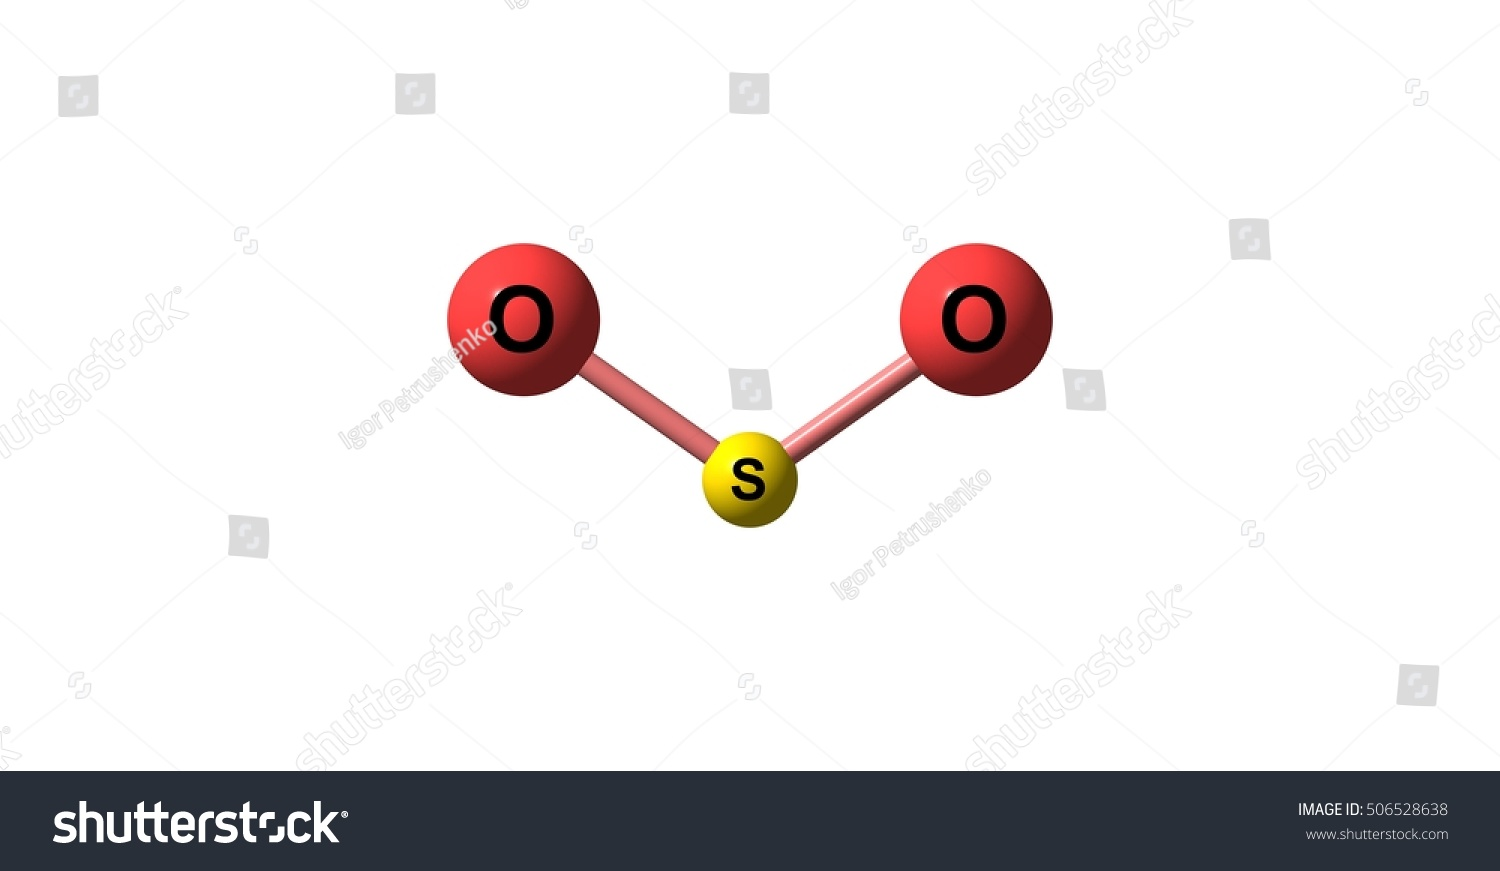 Sulfur dioxide sulphur dioxide chemical compound stock sulfur dioxide or sulphur dioxide is the chemical compound with the formula so2 sulfur dioxide buycottarizona Image collections